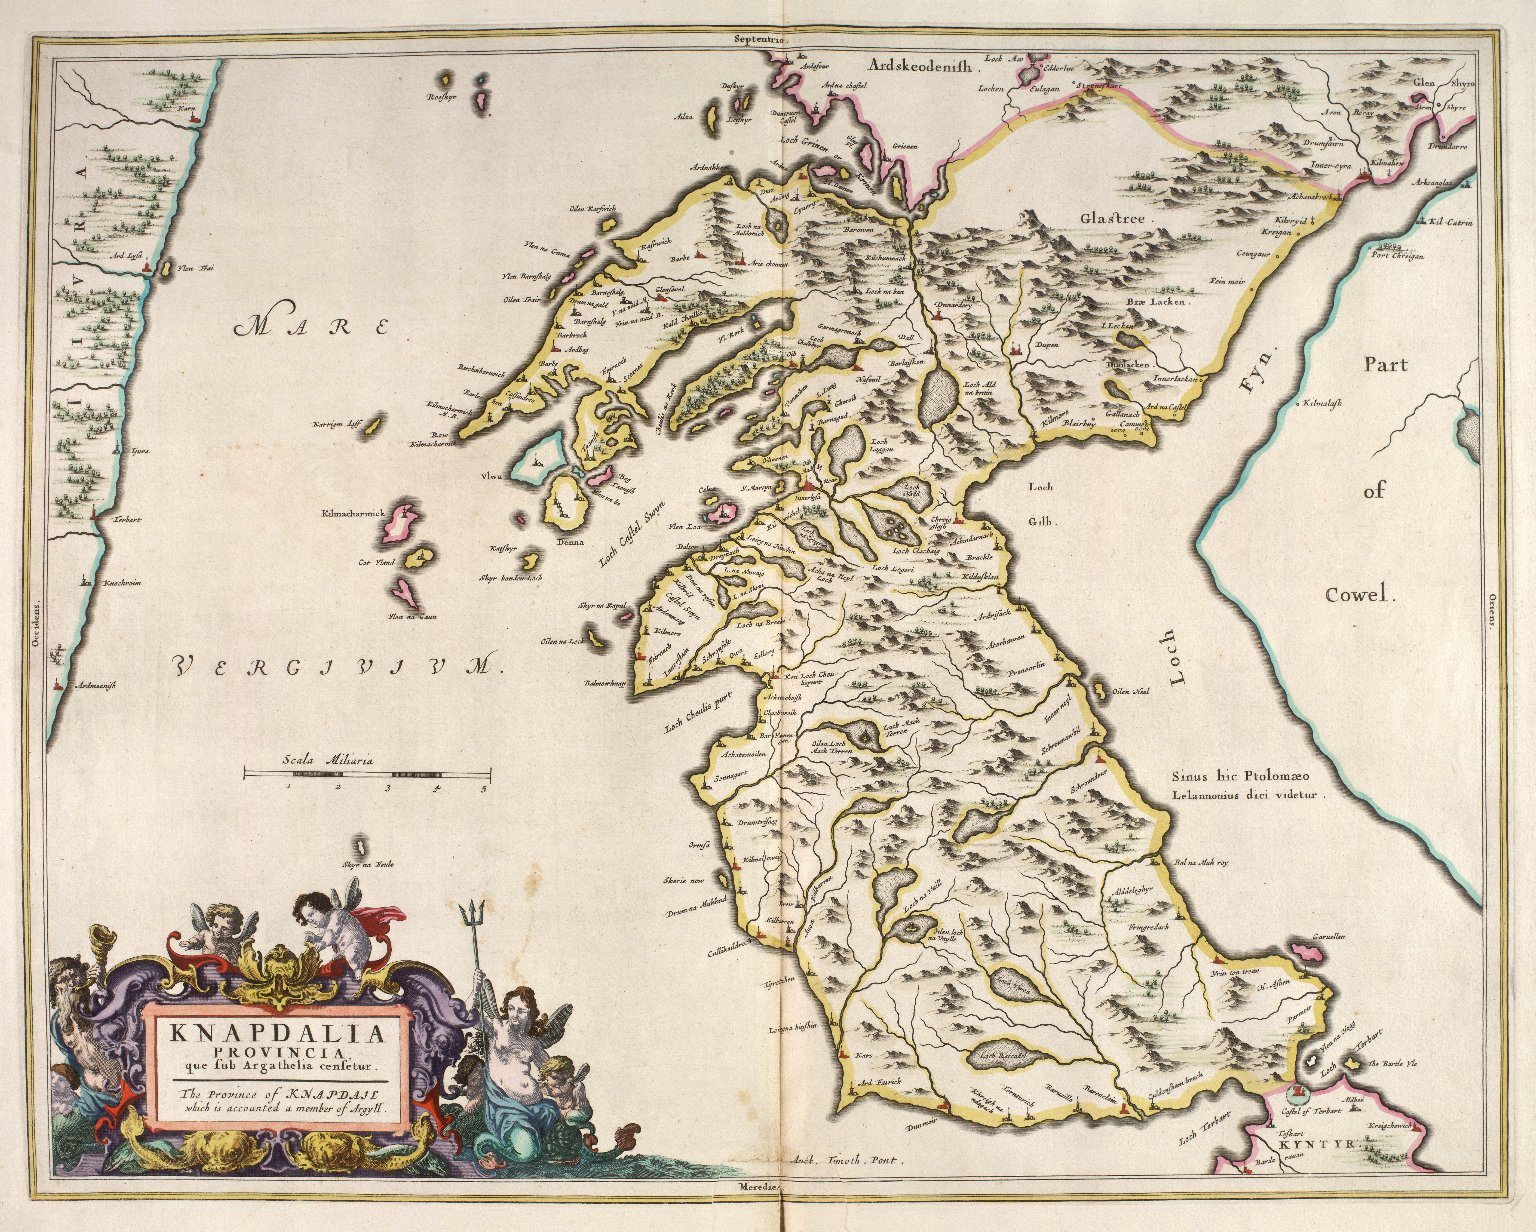 Knapdalia Provincia, que sub Argathelia censetur. The Province of Knapdail which is accounted a member of Argyll. [1 of 1]